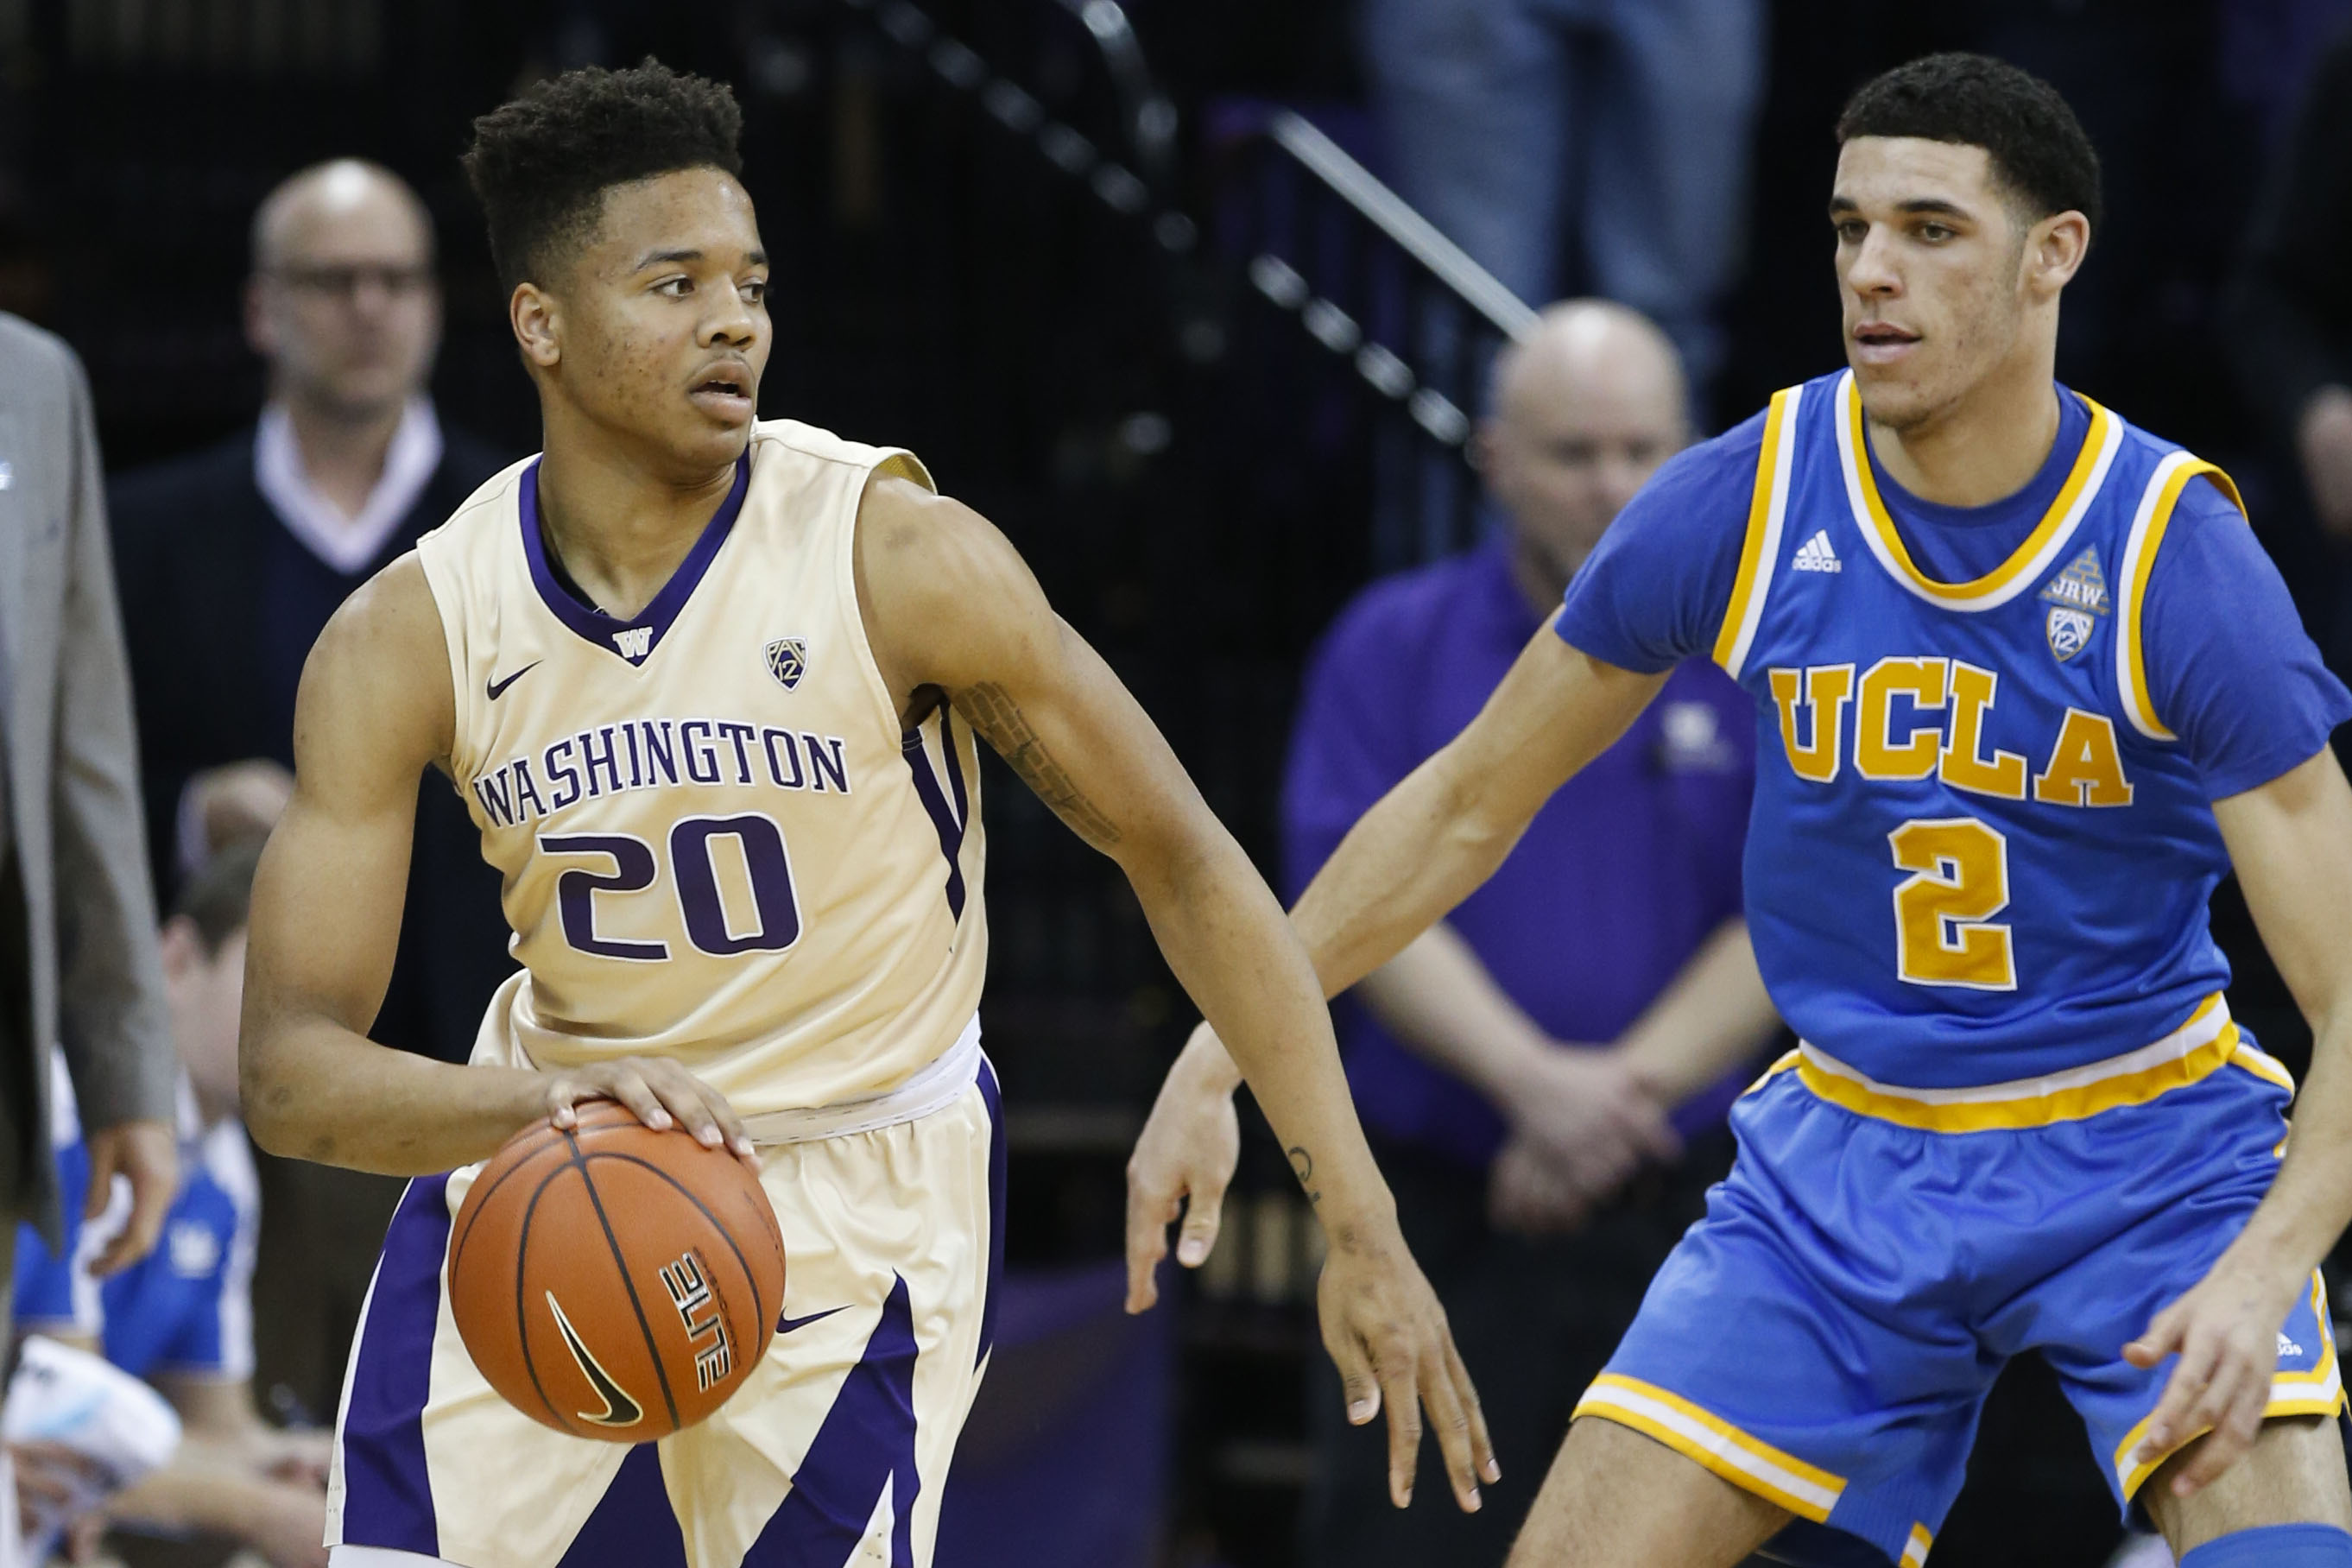 a9d9b4151  NBA 2K  reveals Lonzo Ball s and Markelle Fultz s player ratings